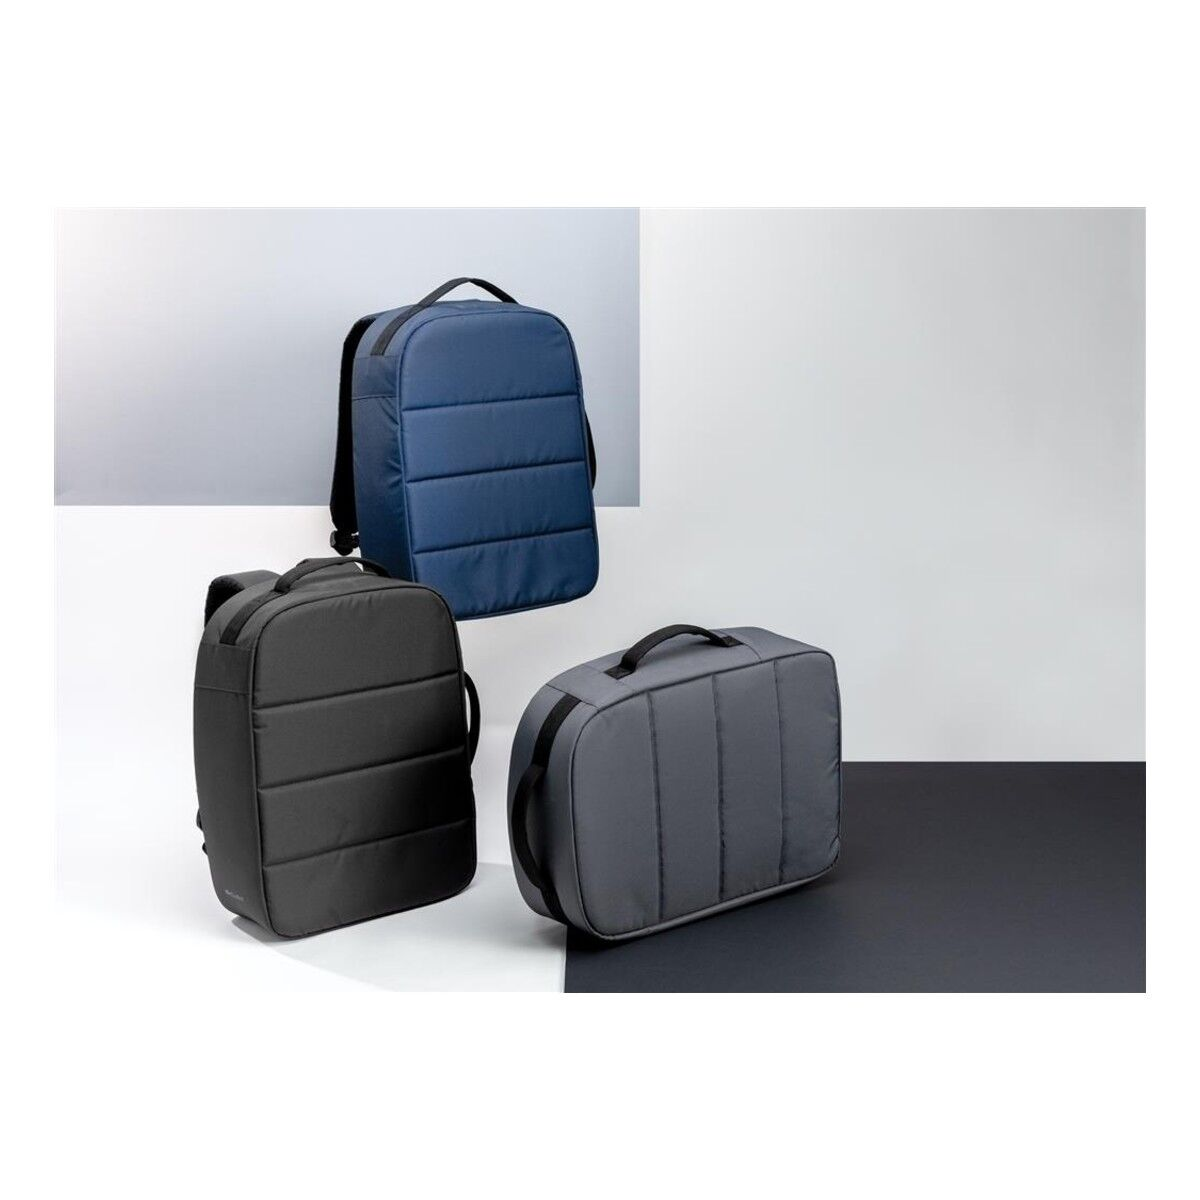 RPET Anti-Theft Laptop Backpack